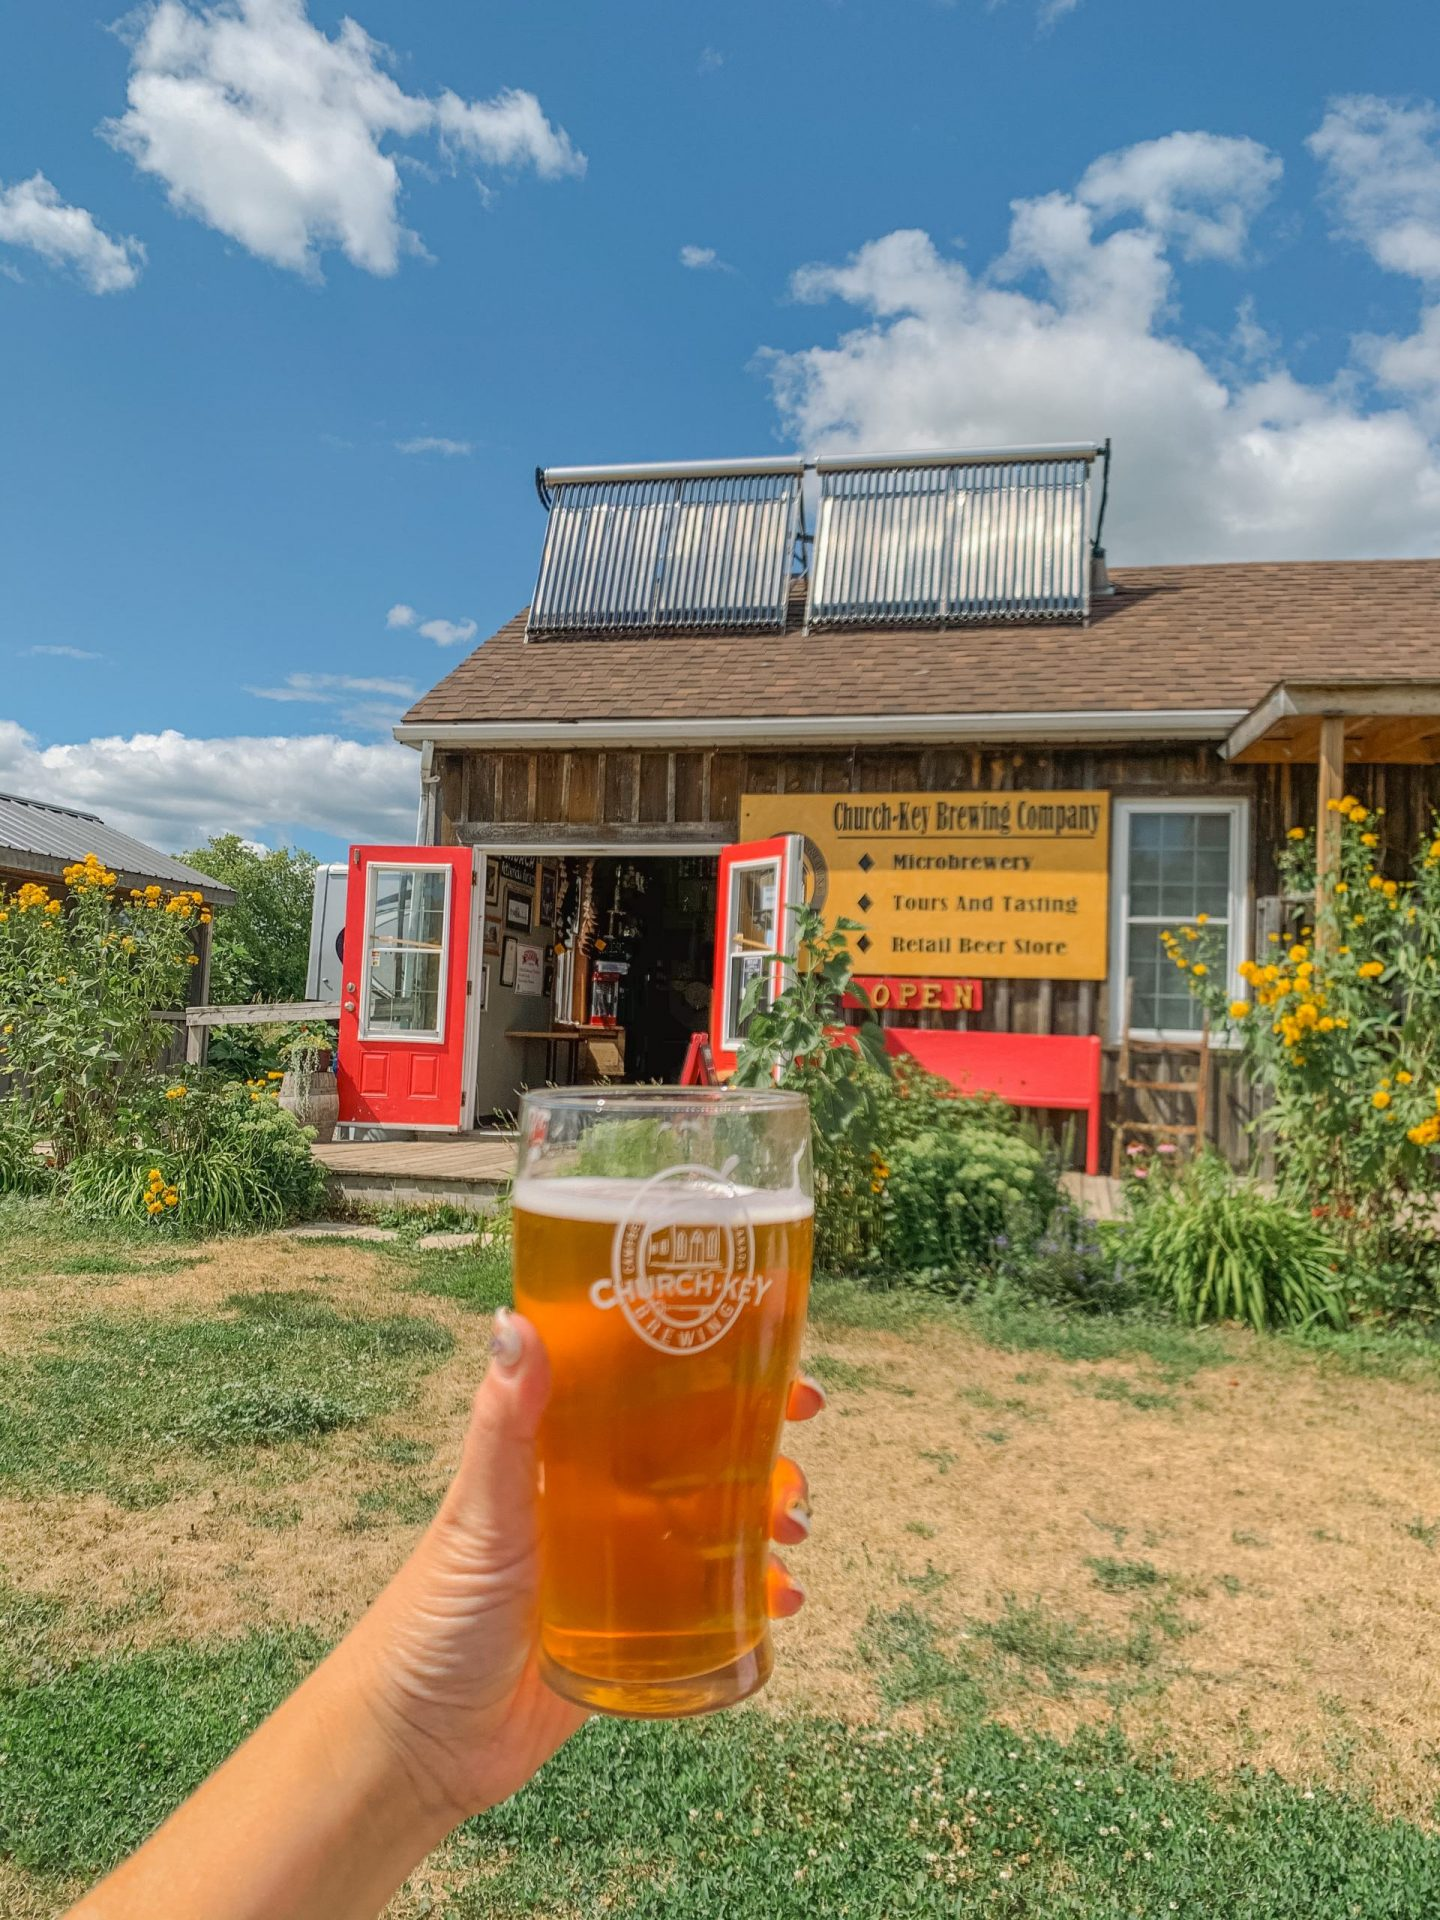 Must visit Church Key Microbrewery in Northumberland